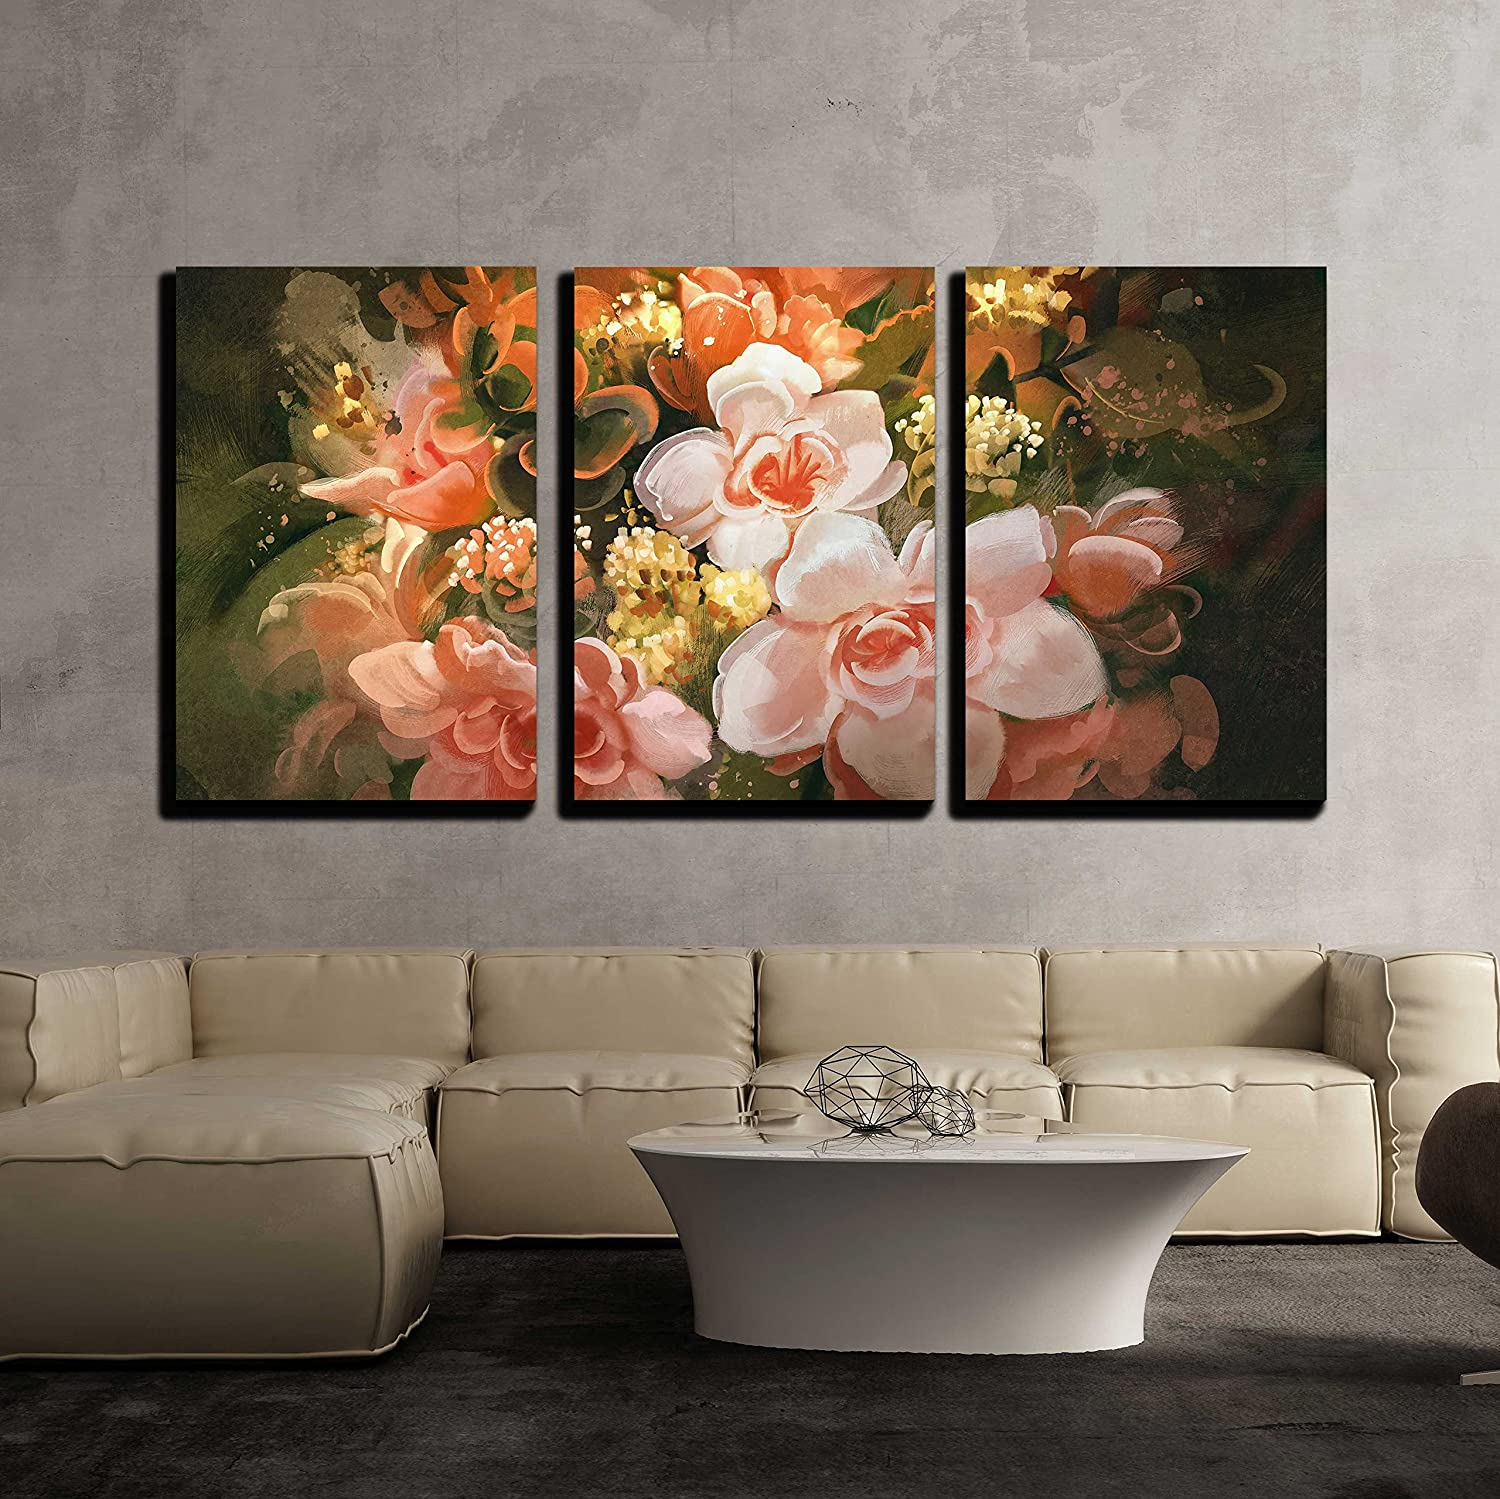 Wall26 3 Piece Canvas Wall Art Illustration Beautiful Flowerscolor Bloomingillustrationdigital Painting Modern Home Decor Stretched And